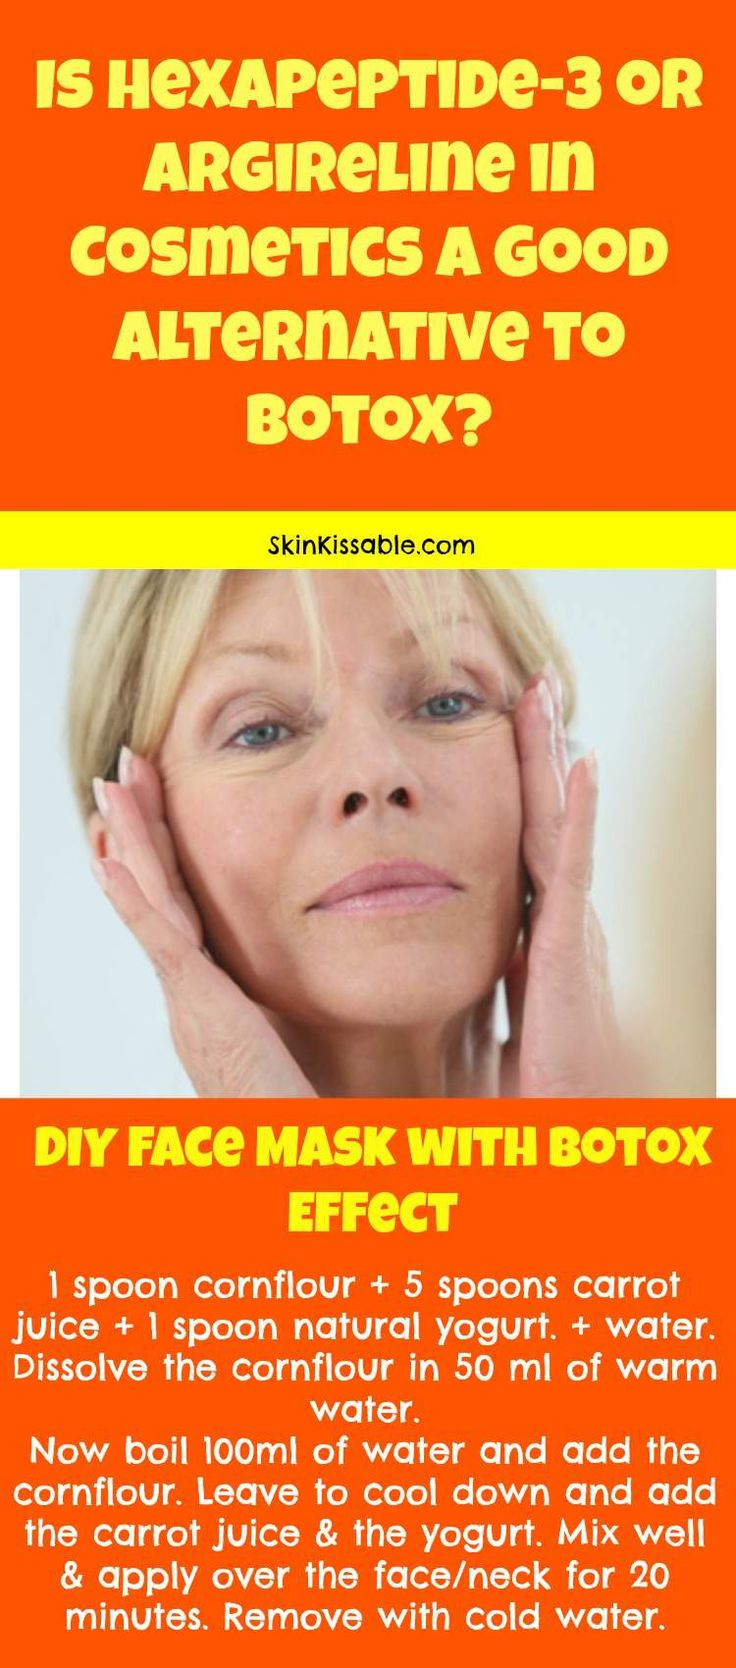 Hexapeptide 3 in Skin Care & Cosmetics. Is it really as good as botox? DIY face lift mask.